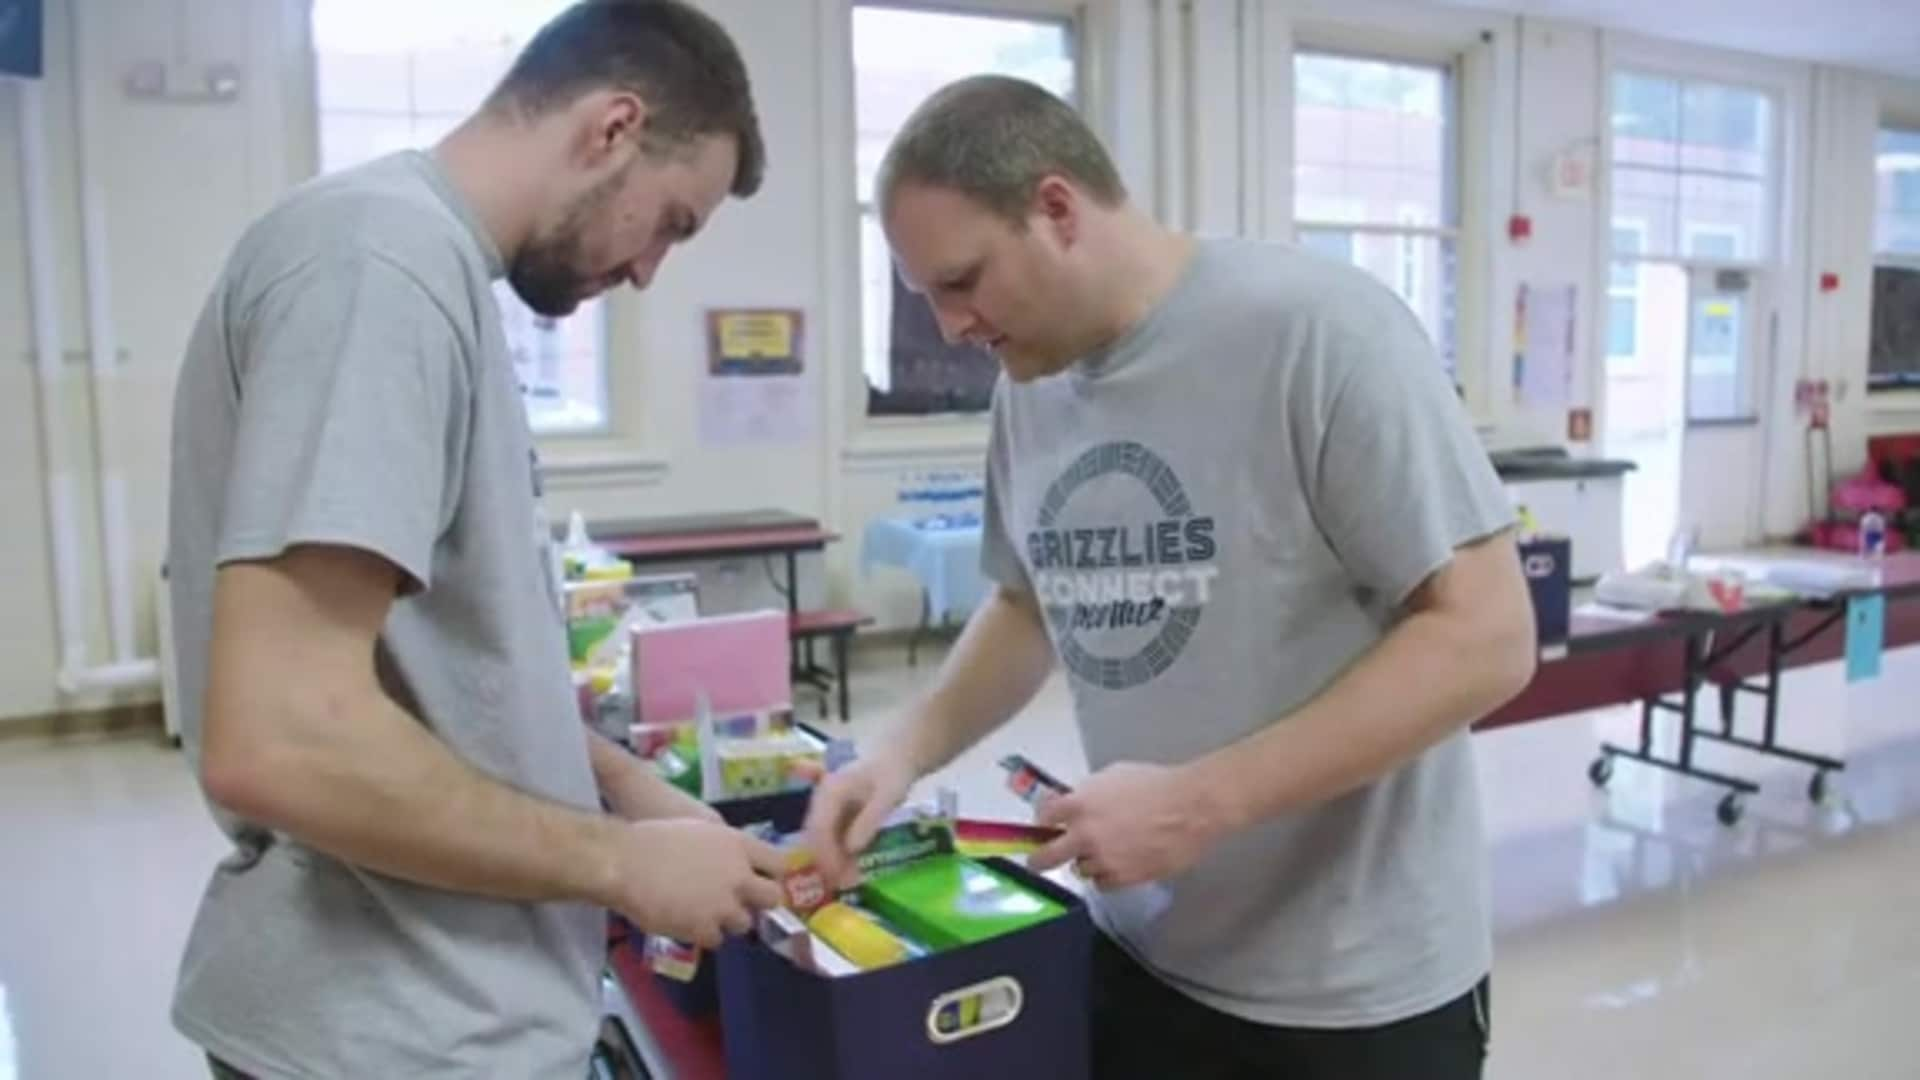 Entire Grizzlies roster and staff volunteer at Bethel Grove for 'Grizzlies CONNECT Day of Service'